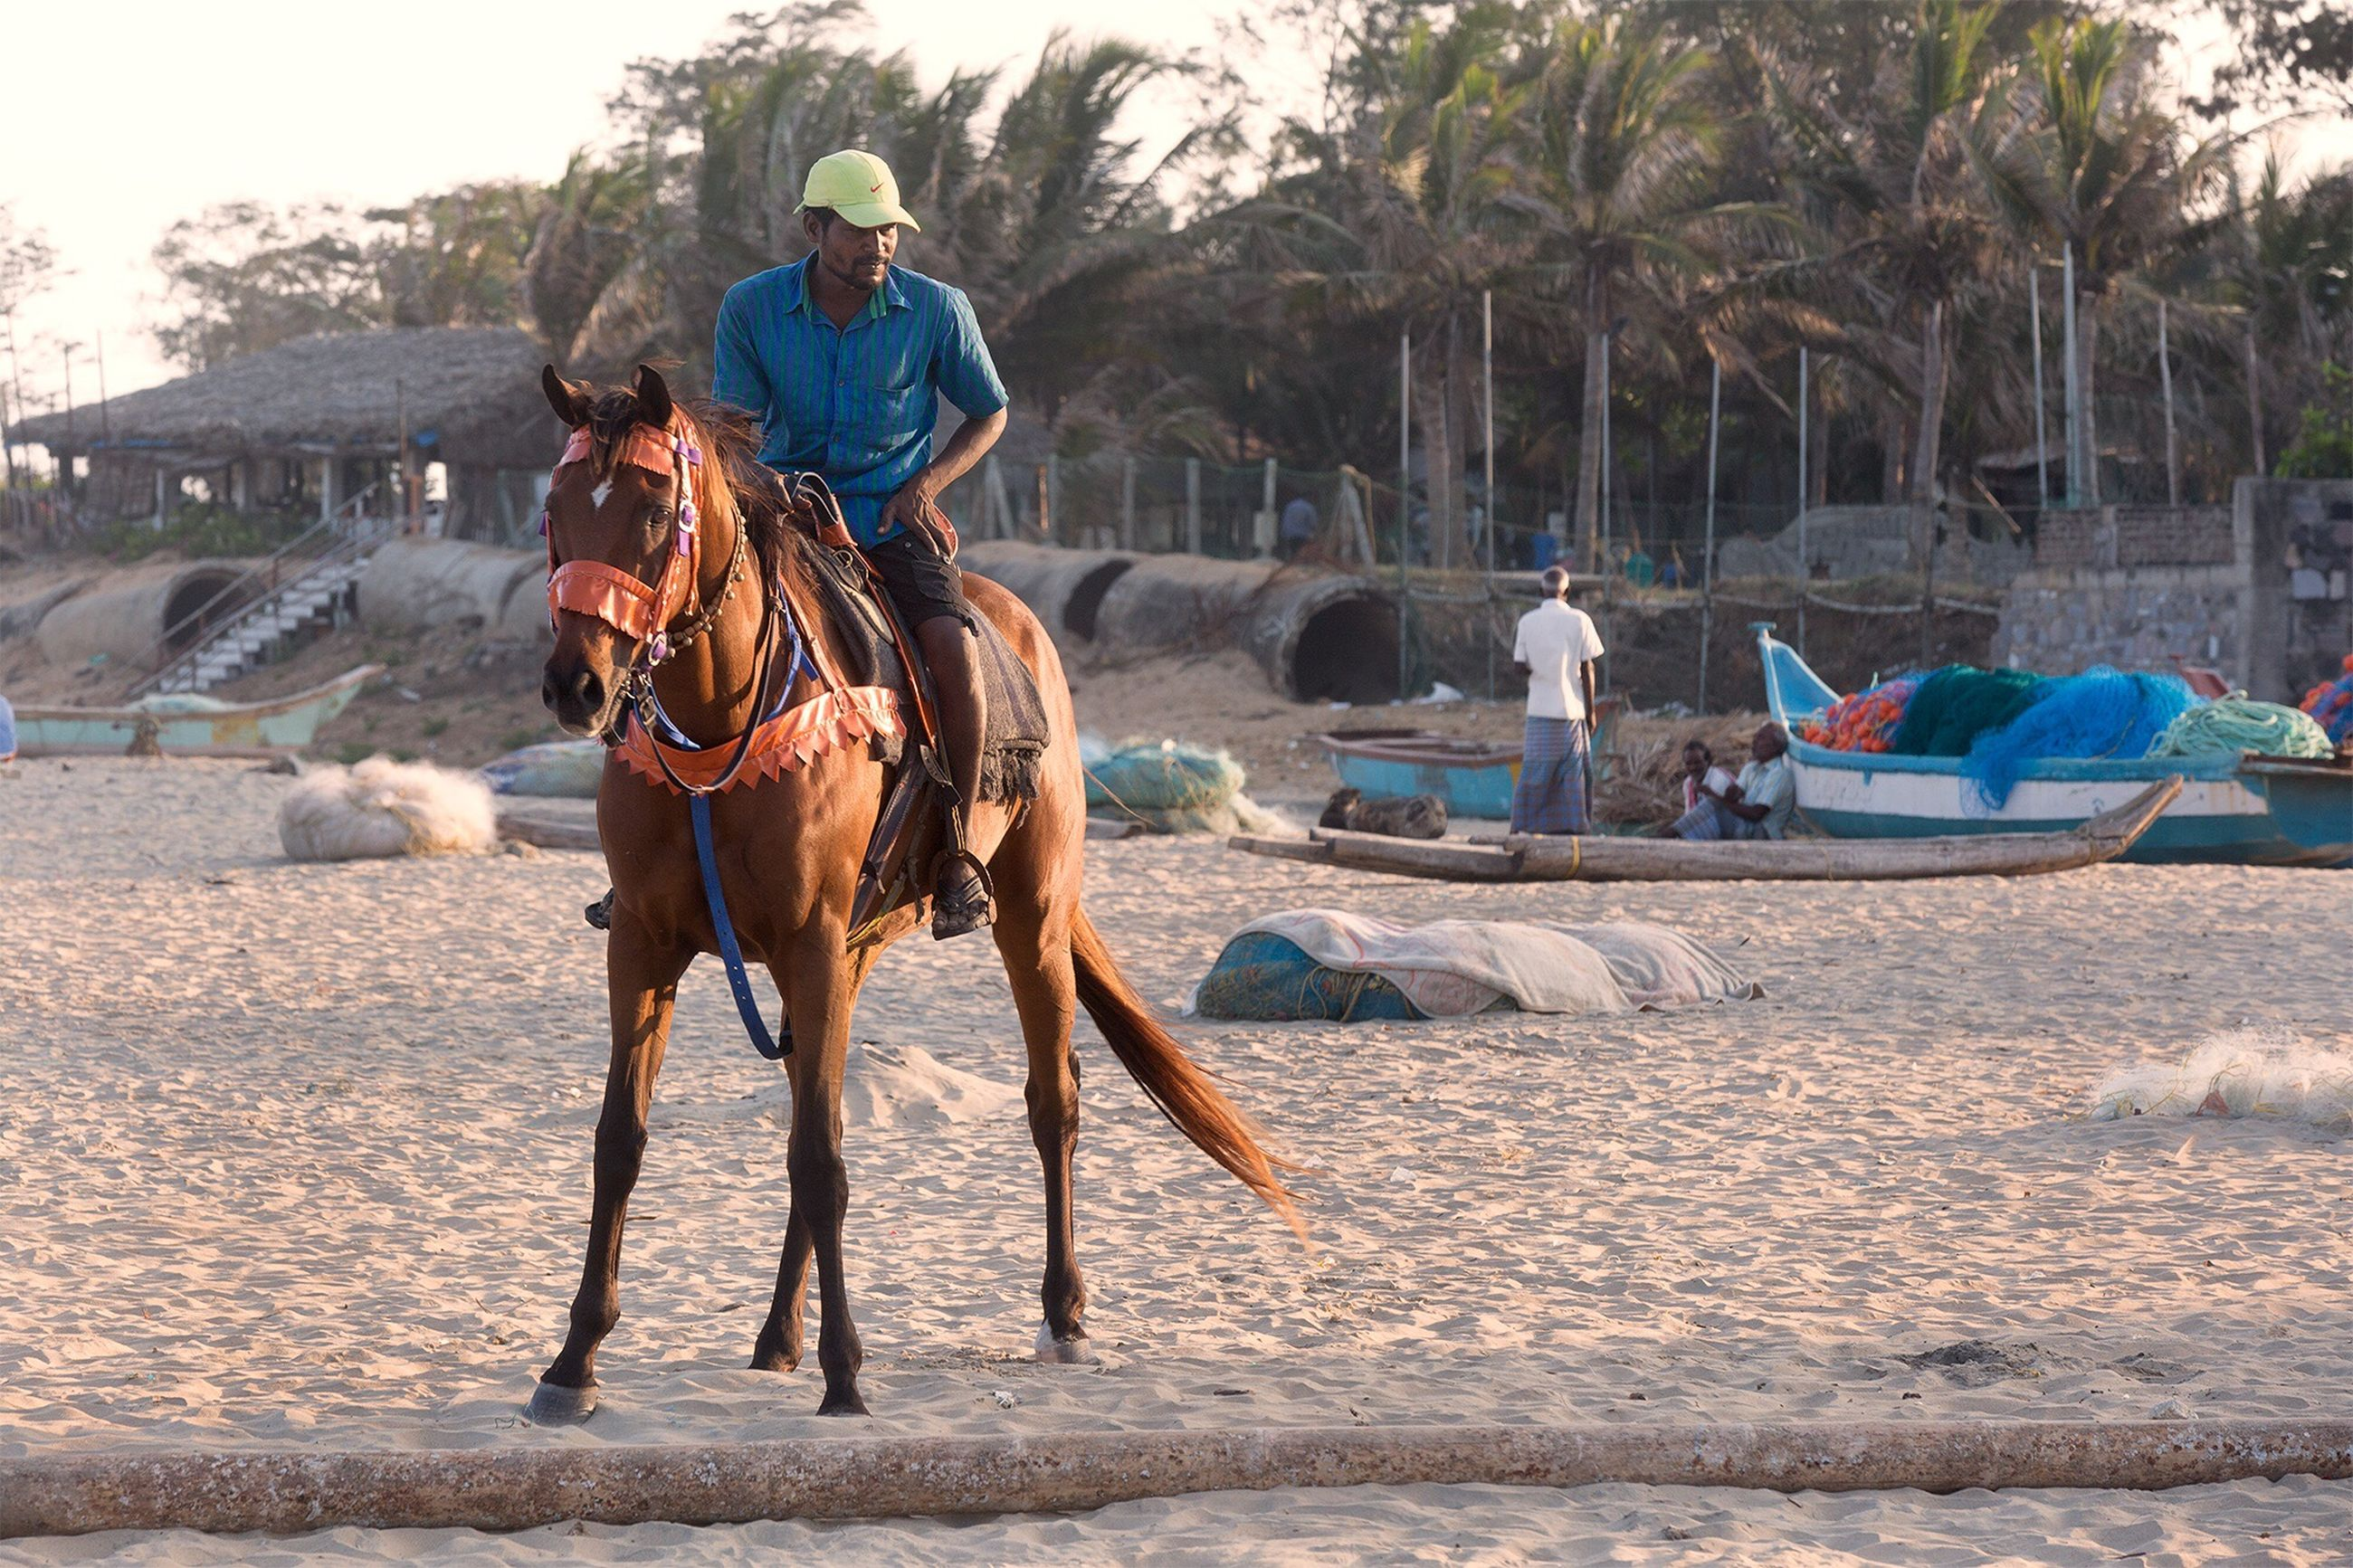 lifestyles, leisure activity, full length, beach, casual clothing, water, tree, sand, men, building exterior, sunlight, incidental people, palm tree, sky, horse, day, outdoors, standing